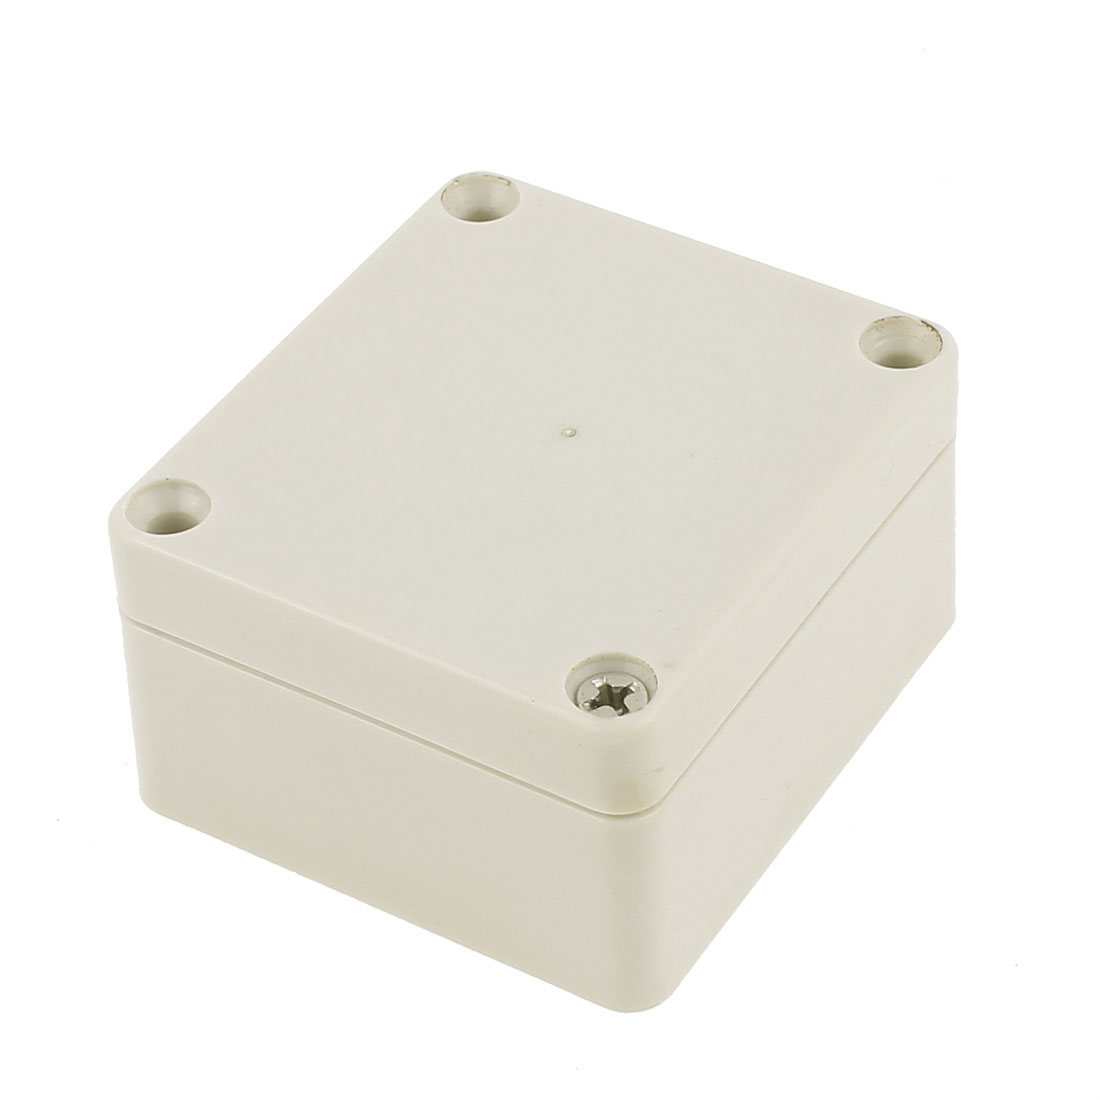 64 x 58 x 35mm Dustproof IP65 Junction Box Terminal Connecting Box Enclosure